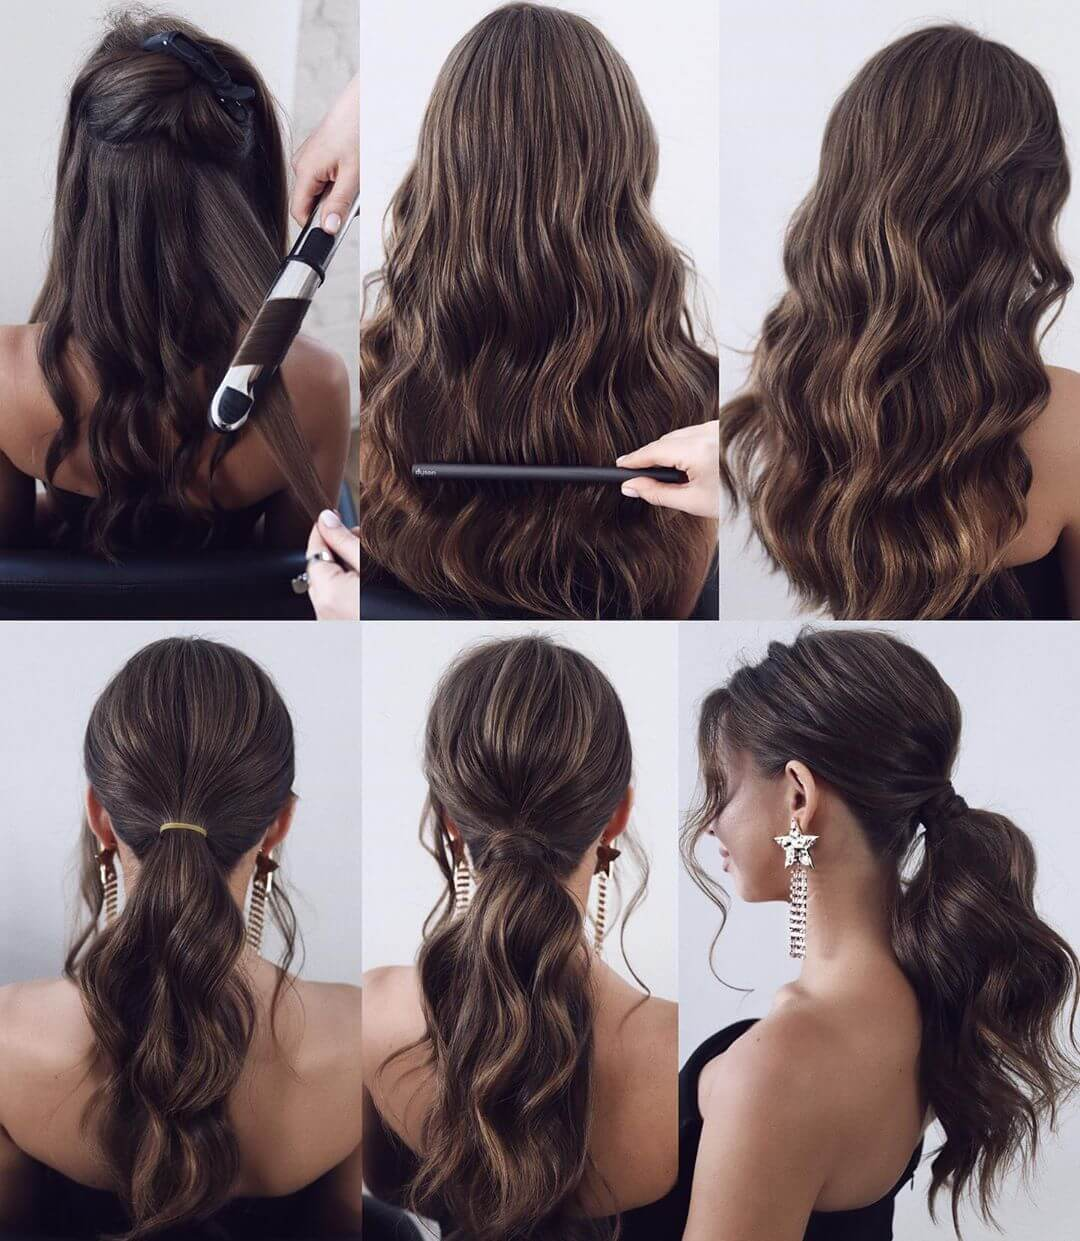 Step by Step Low pony tail Hairstyles for Long, Medium, Short Hair